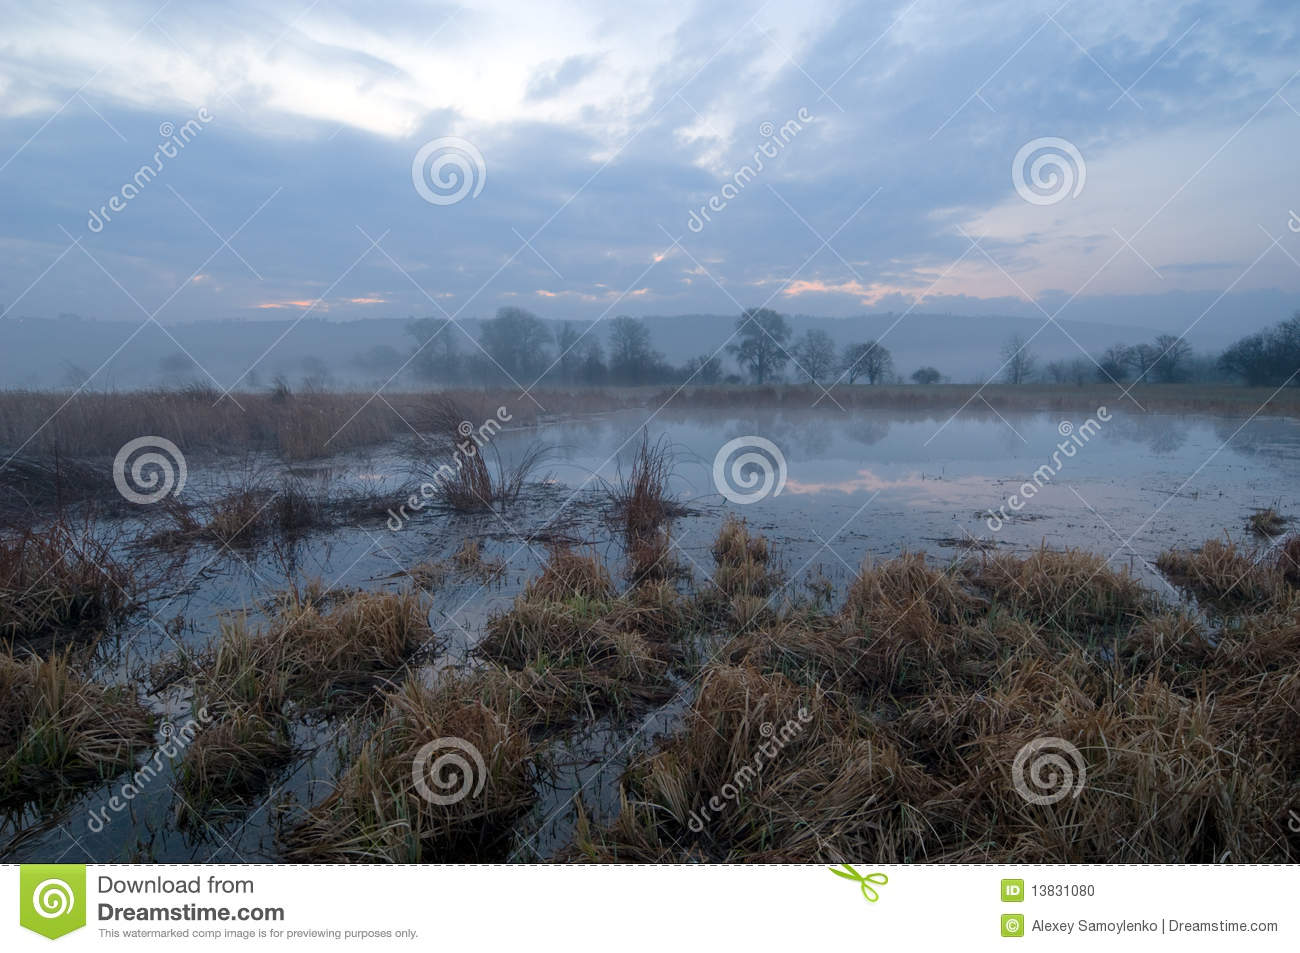 Morning time in swamp area